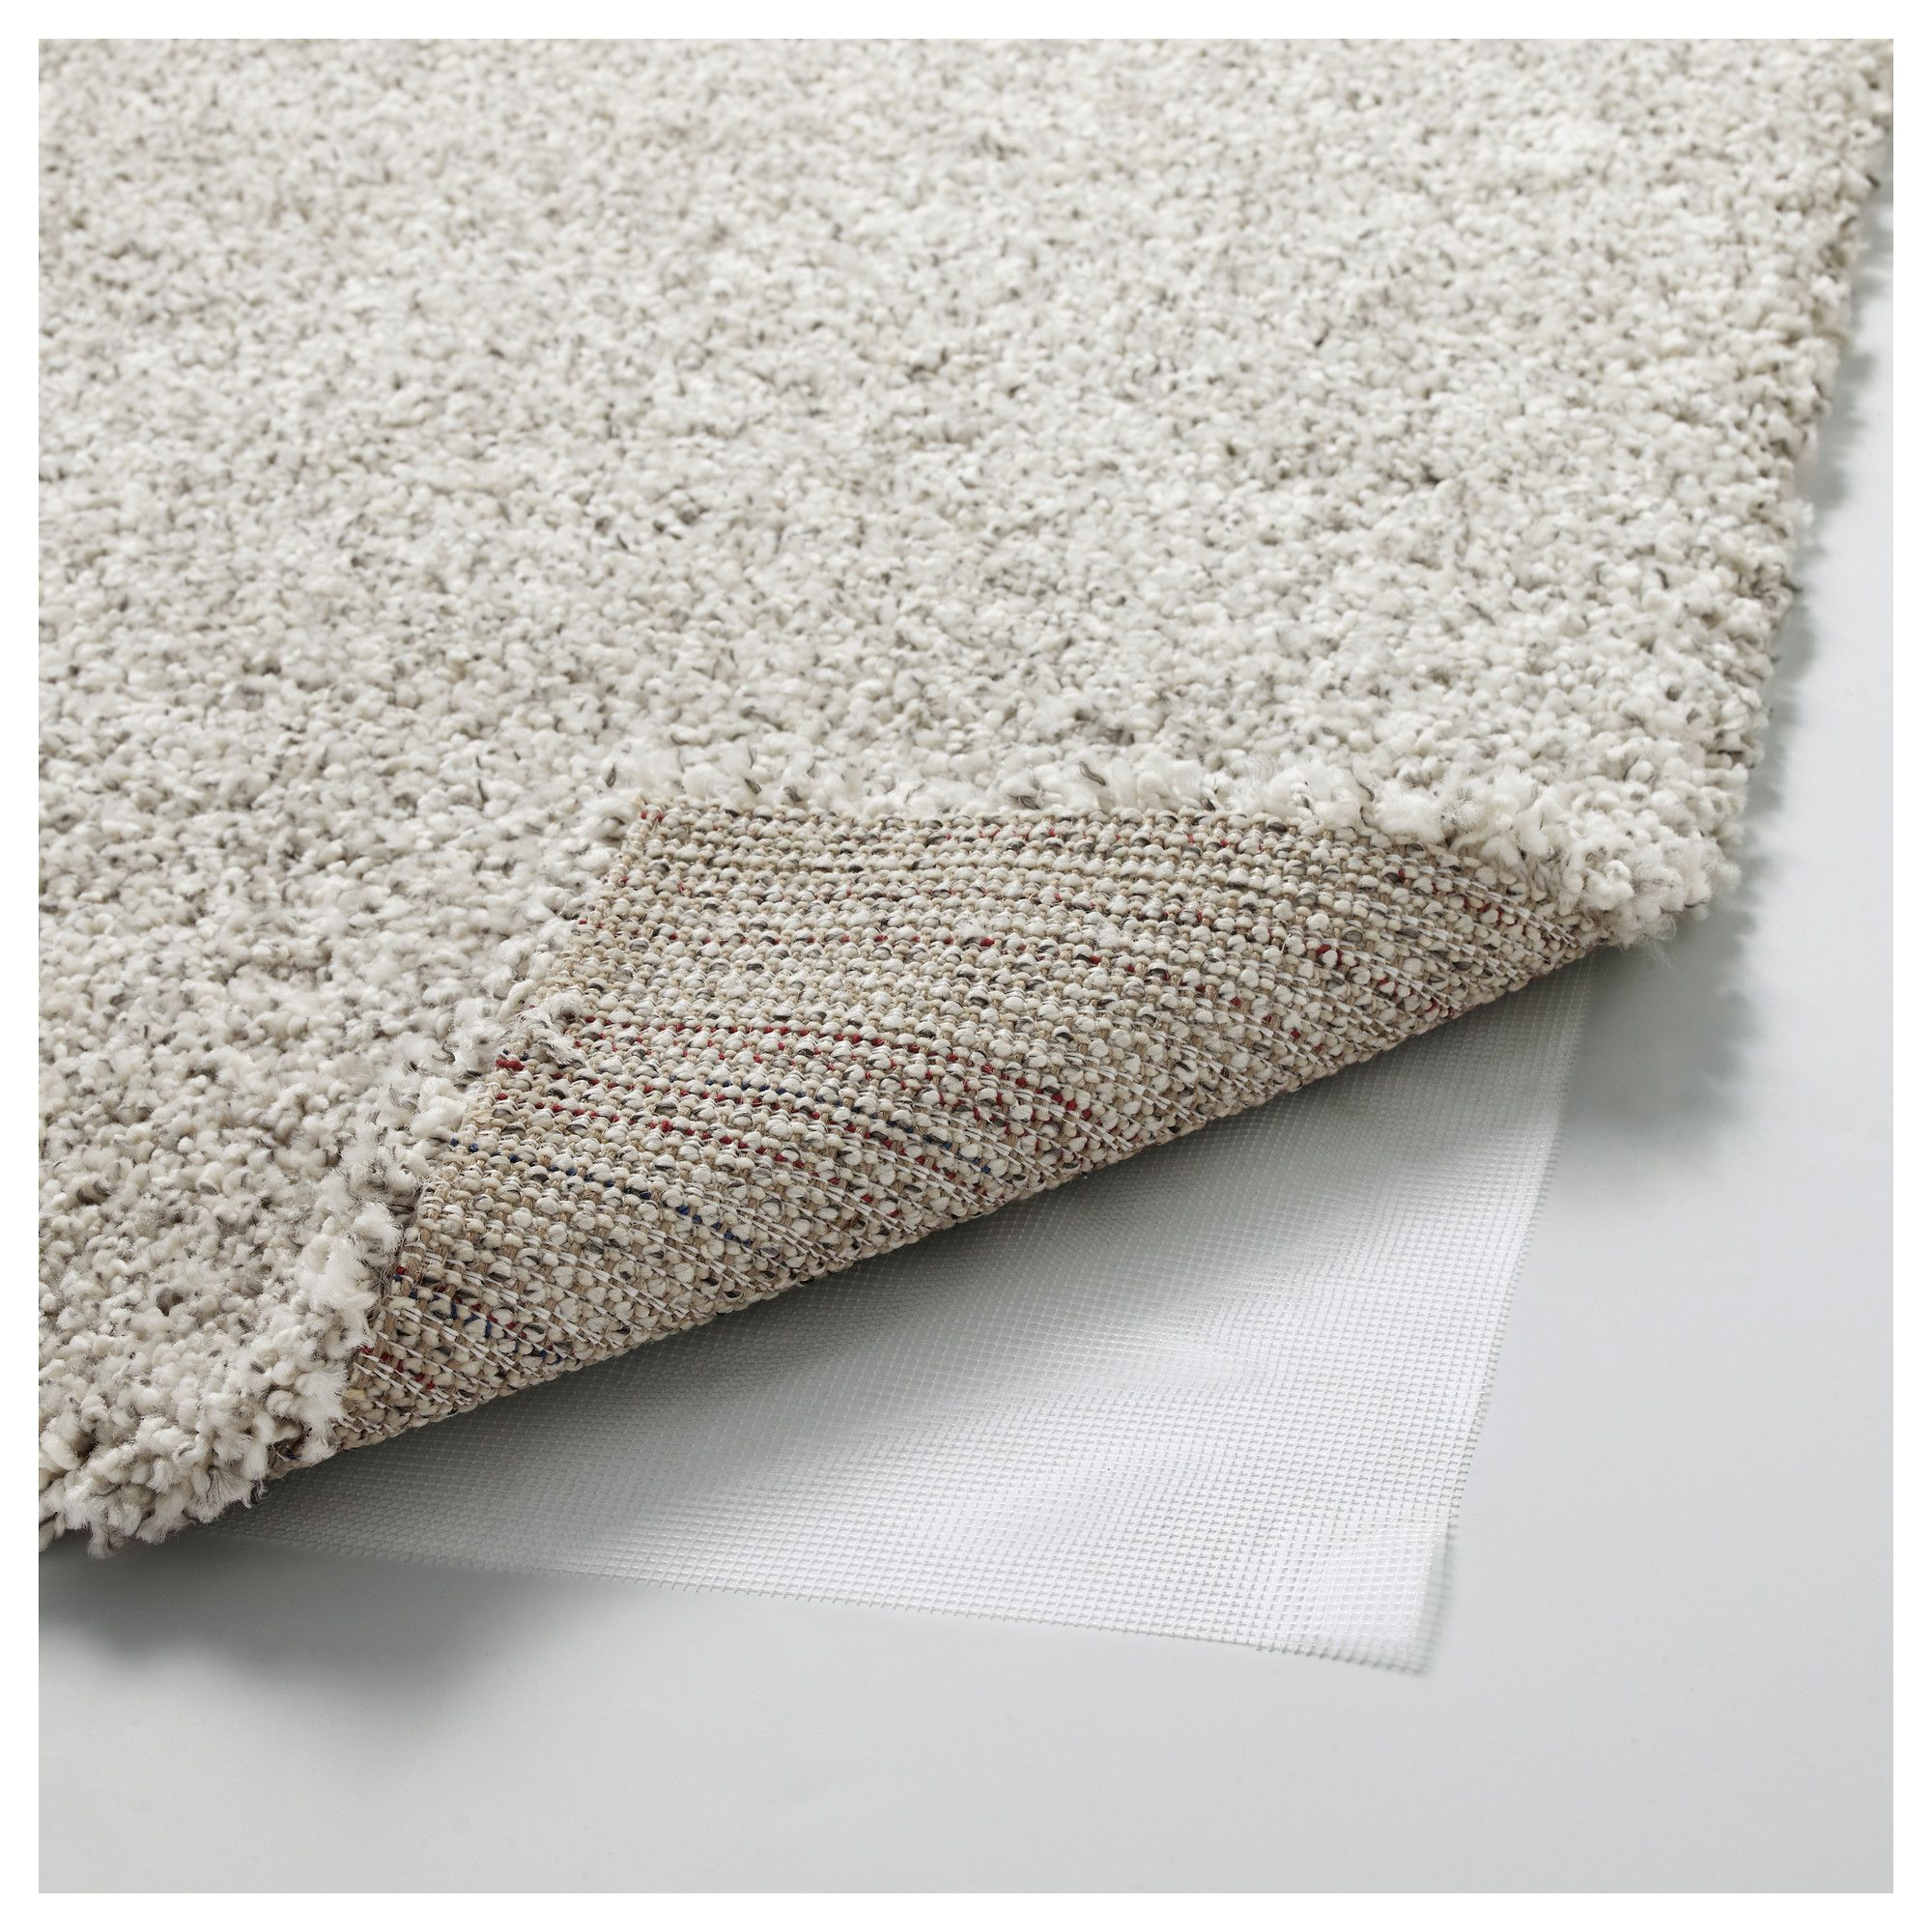 Want To Buy Rugs Simple Guideline Yonohomedesign Com In 2020 Rugs Ikea Ikea Rug